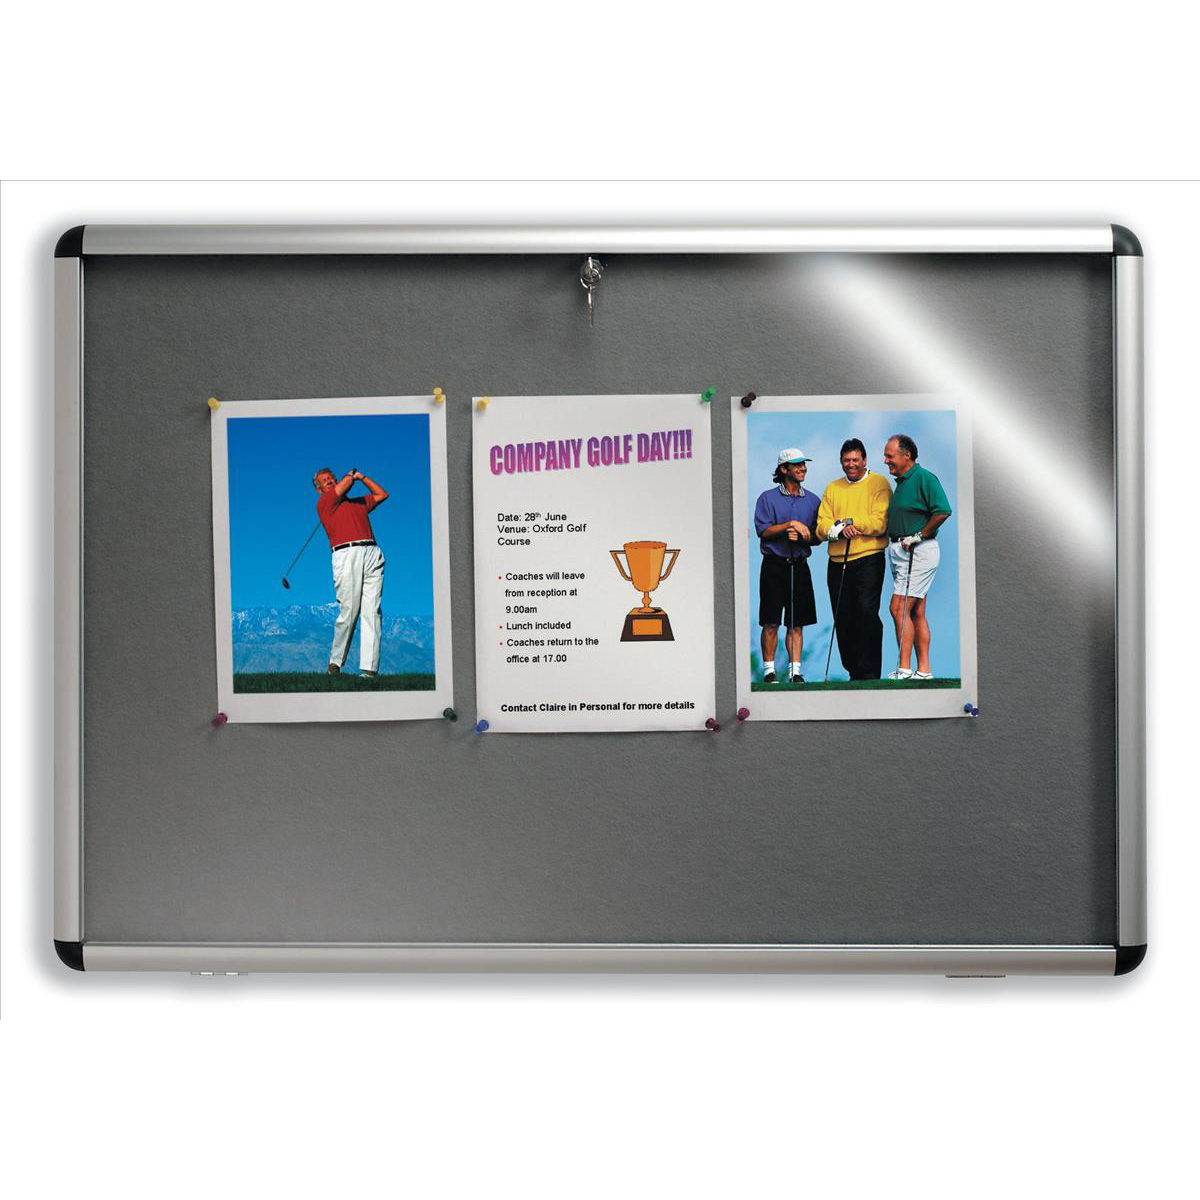 Nobo Display Cabinet Noticeboard Visual Insert Lockable A1 W1025xH745mm Grey Ref 31333500